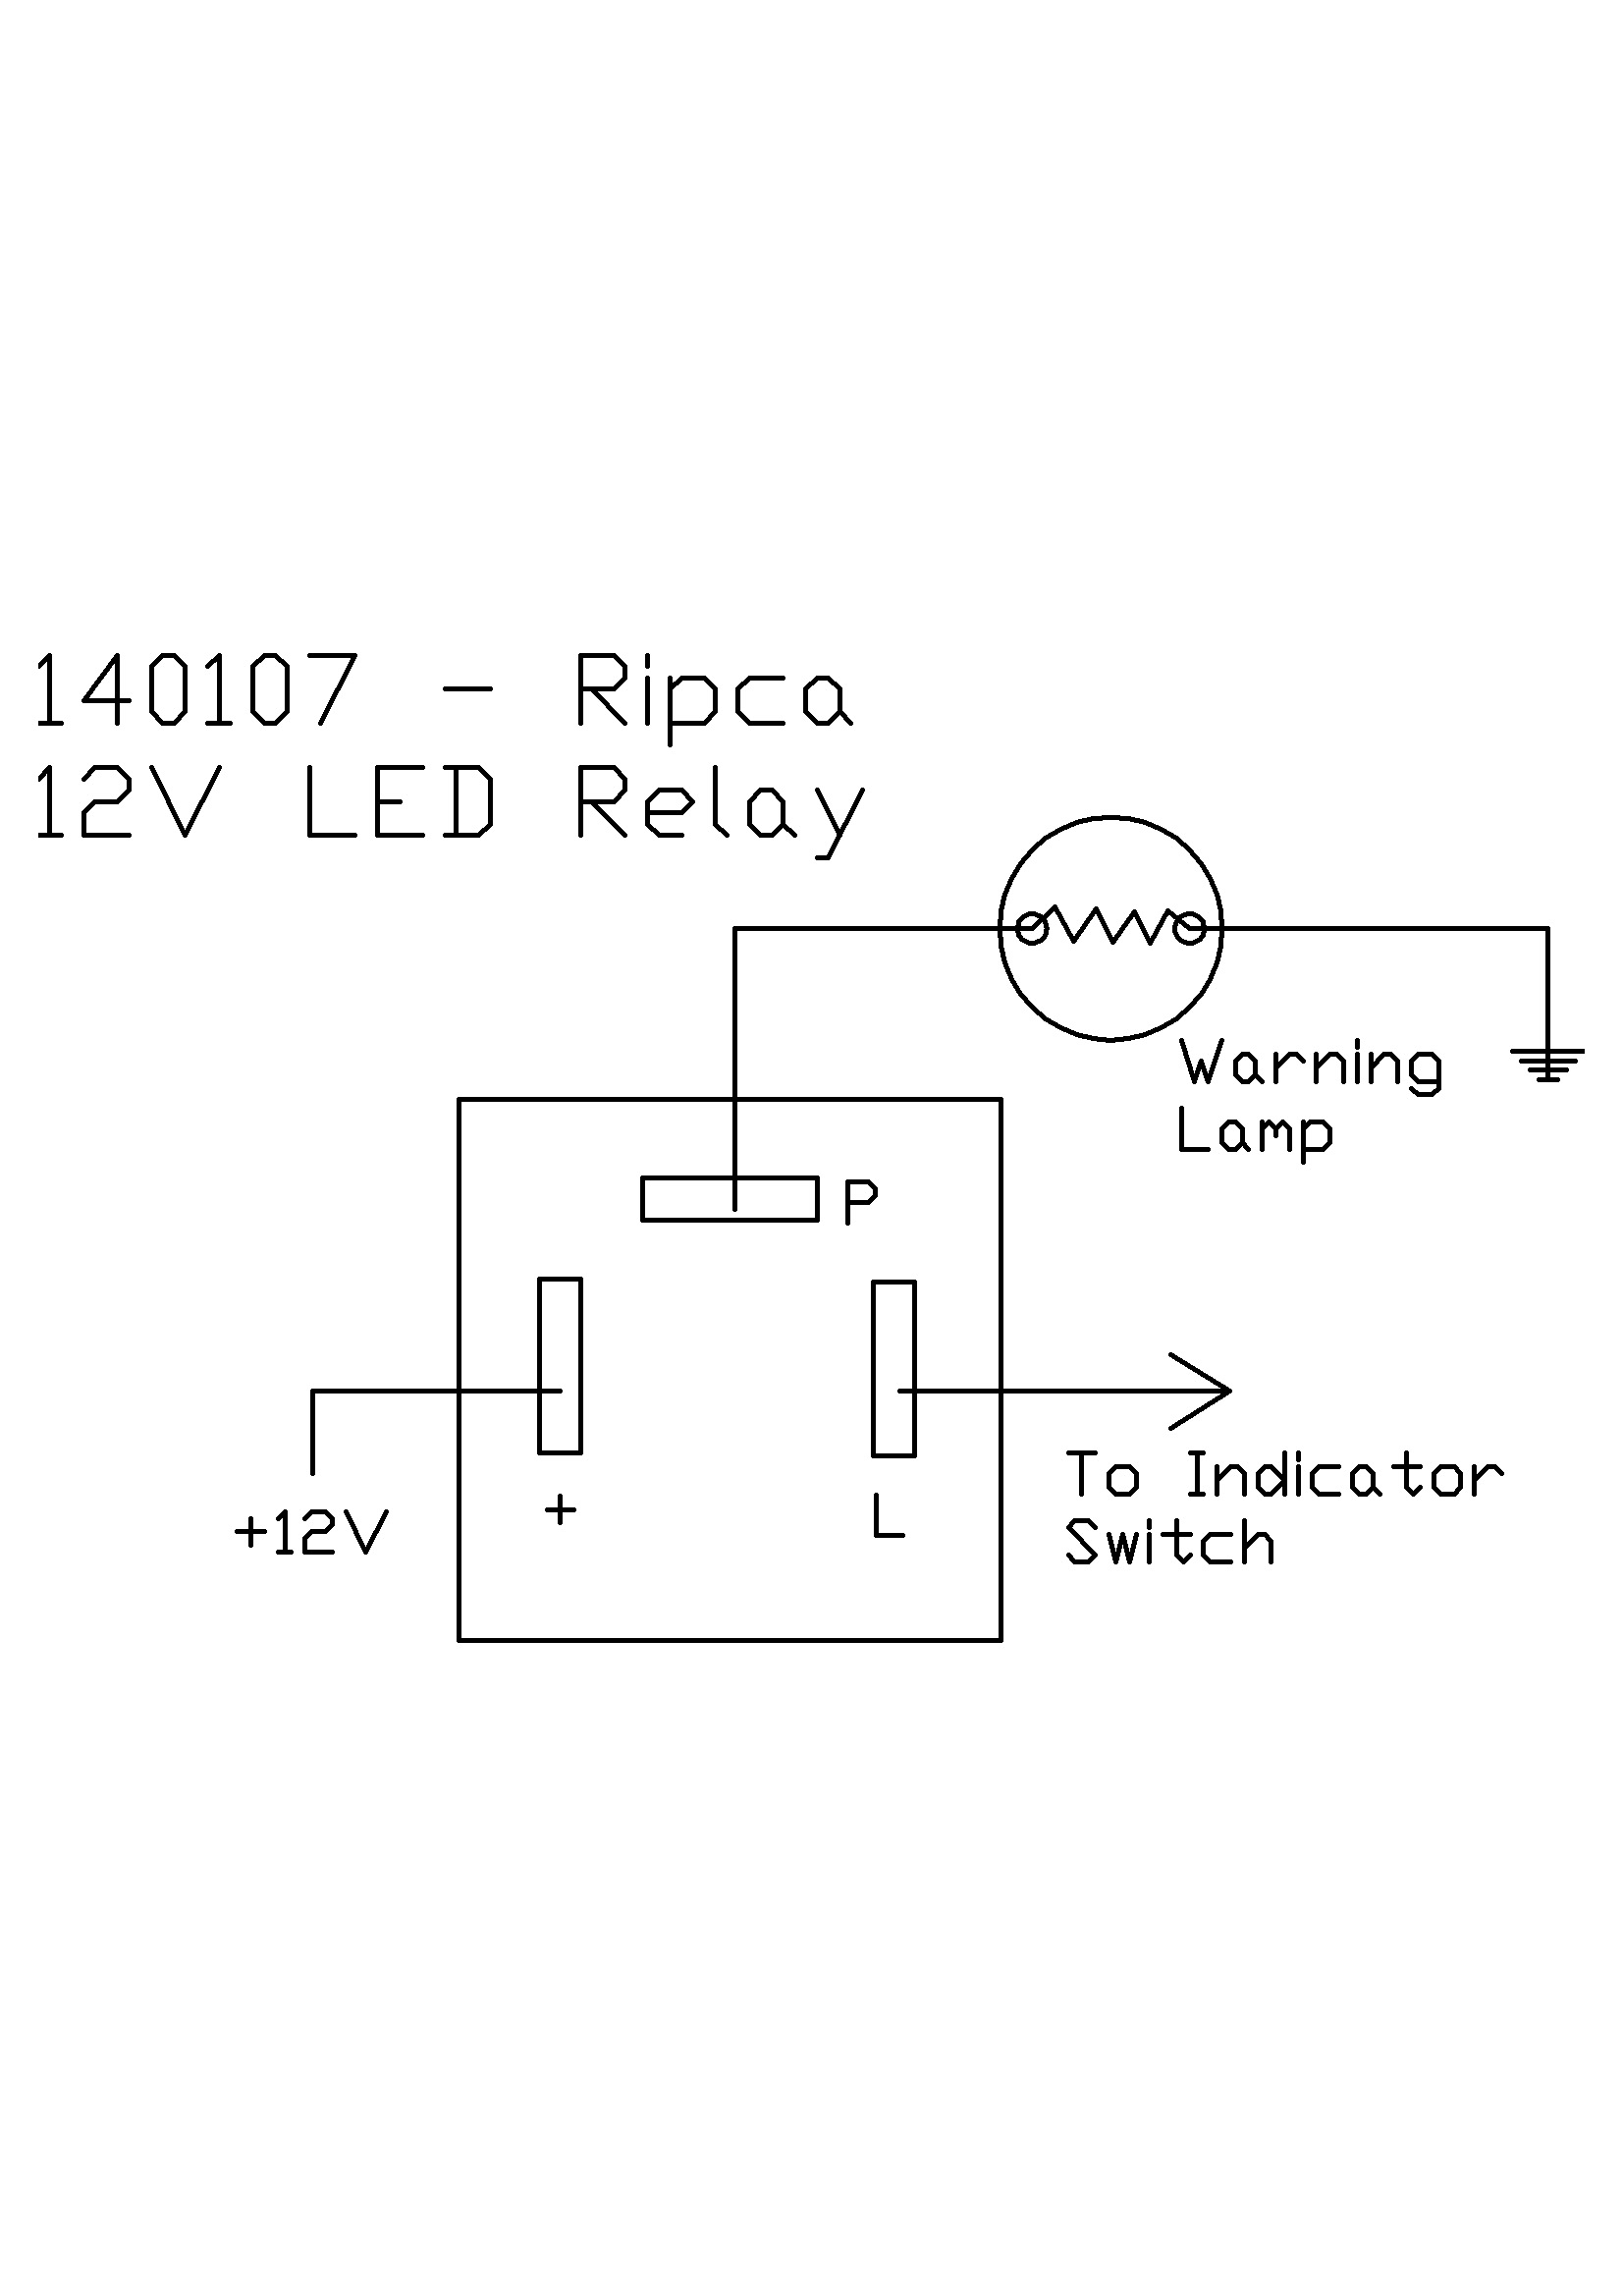 140107 ripca 12 volt led flasher unit flasher unit wiring diagram at aneh.co